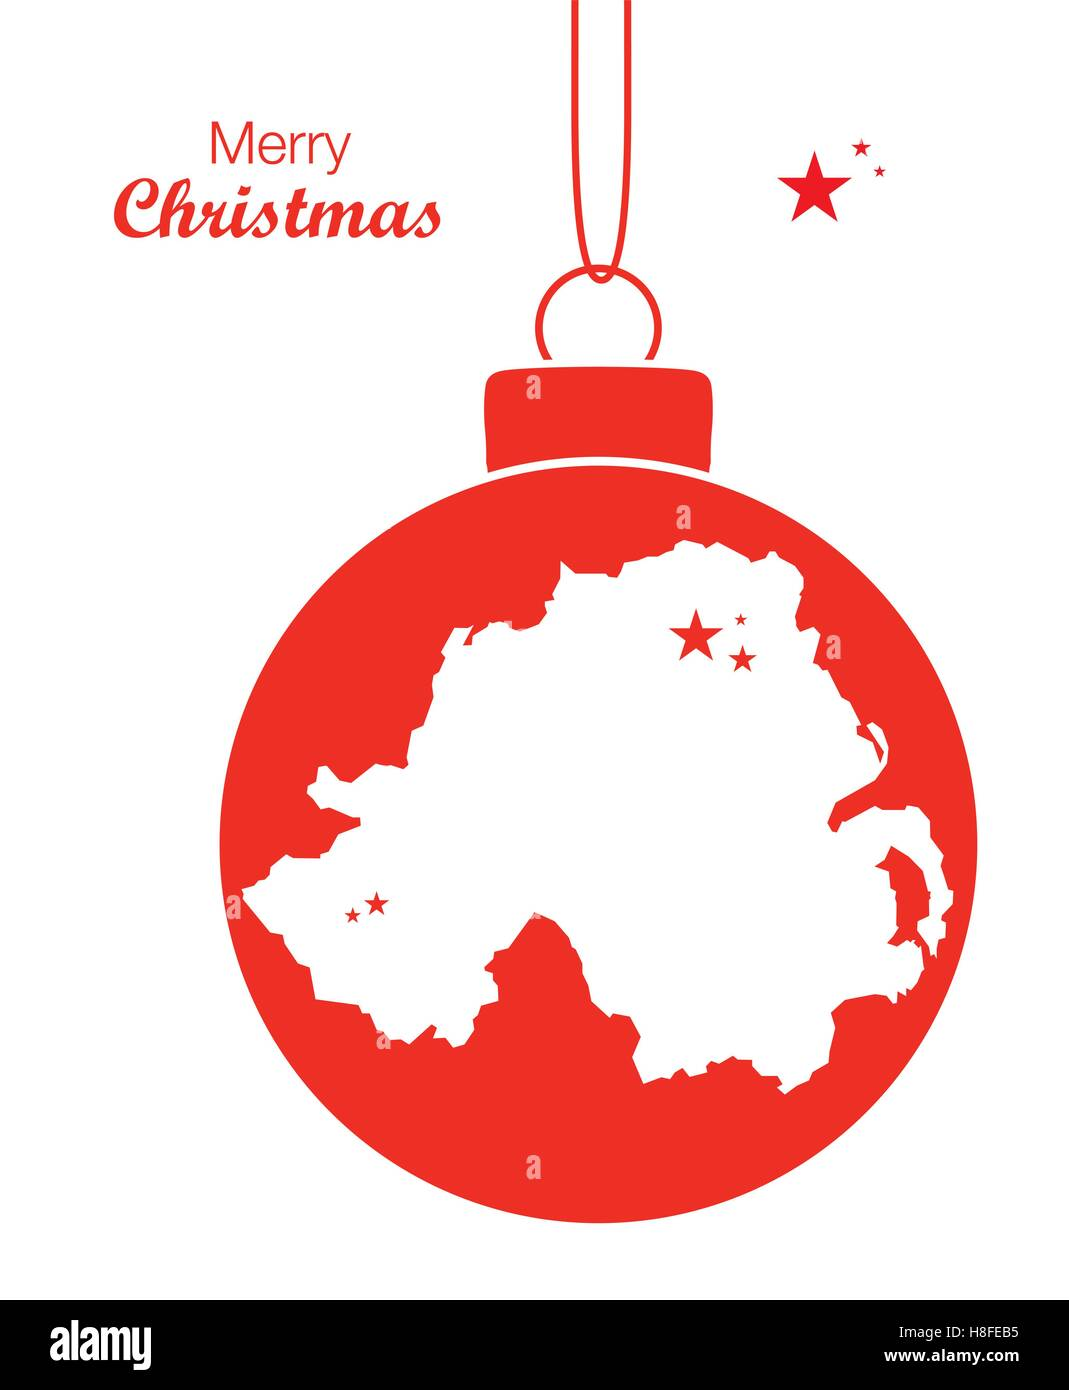 Ireland Christmas Stock Vector Images - Alamy